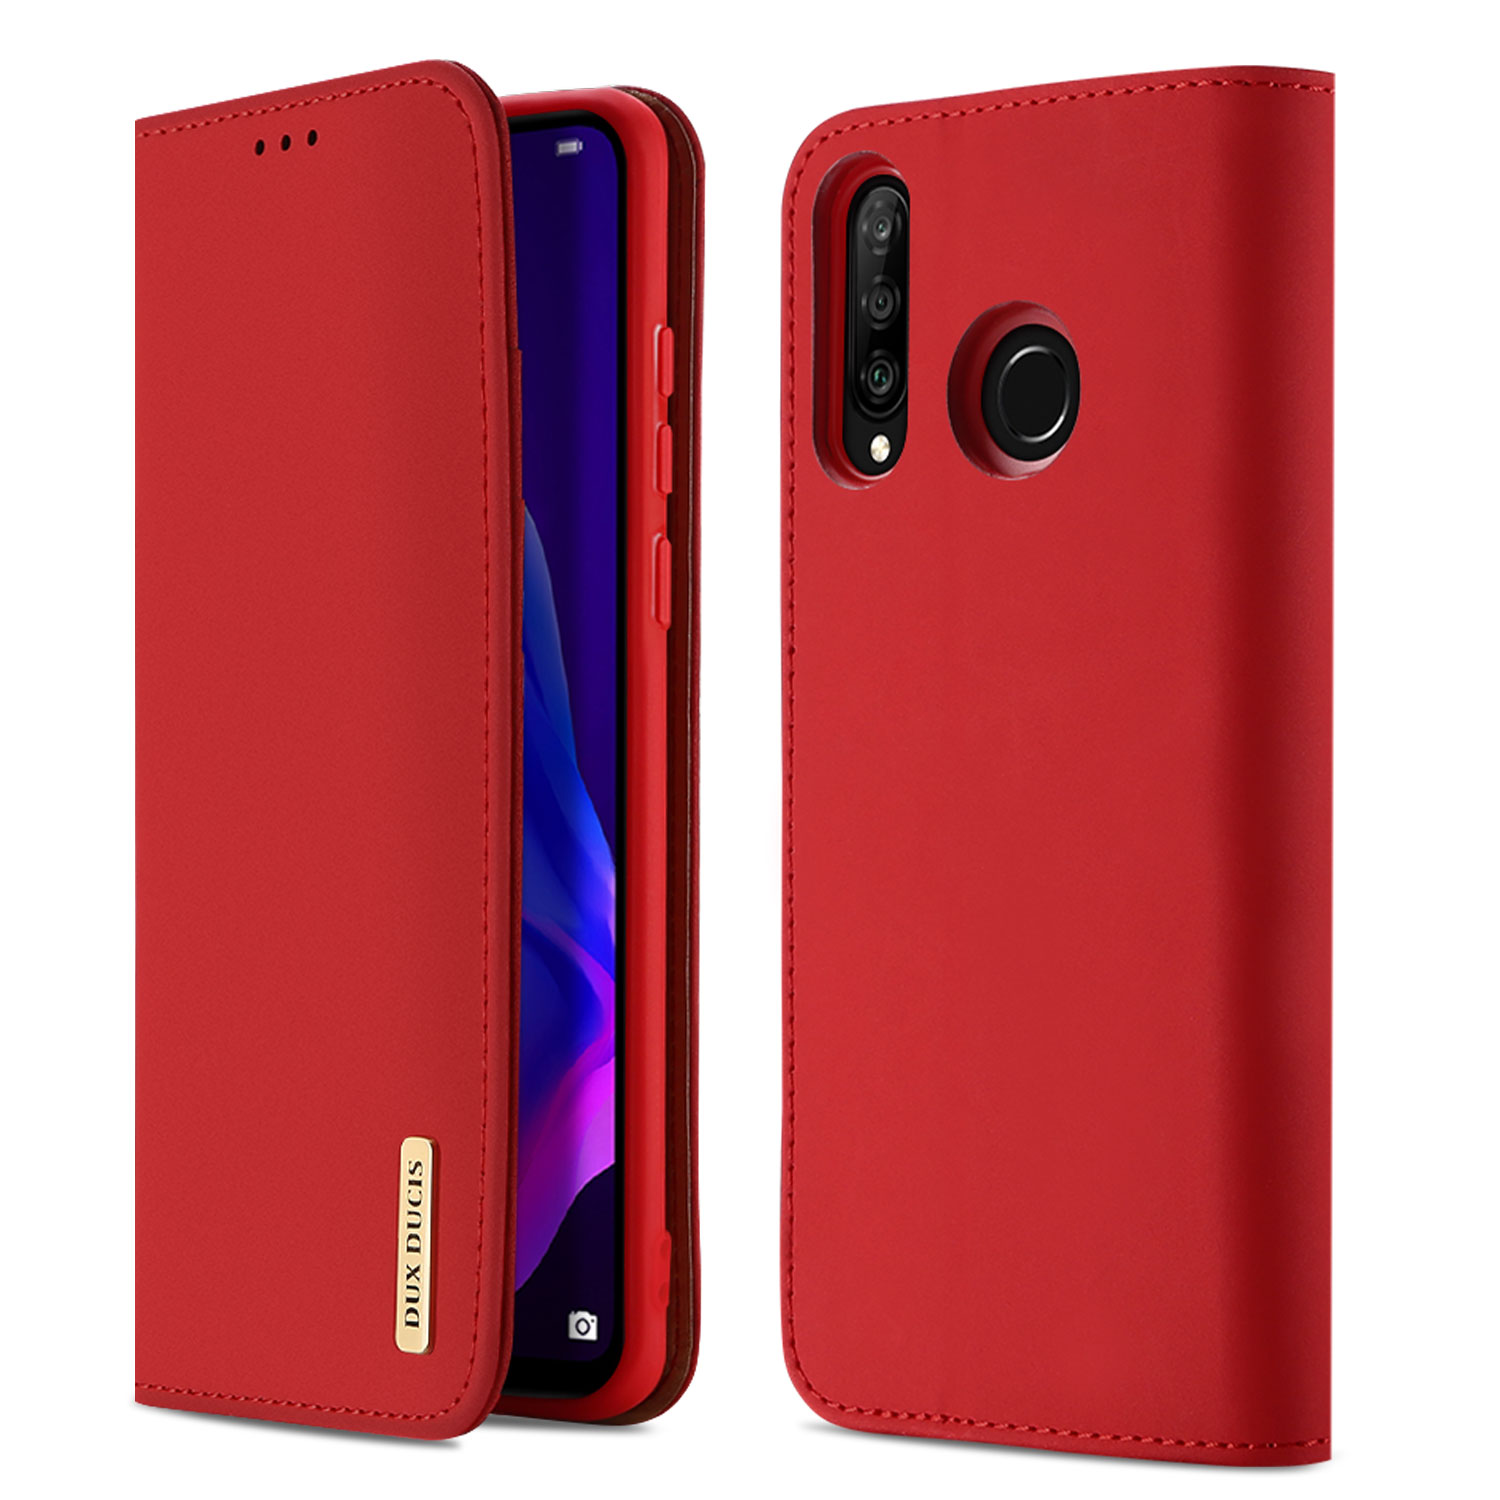 DUX DUCIS For HUAWEI P30 lite / Nova 4E Solid Color Magnetic Leather Protective Phone Case with Bracket red